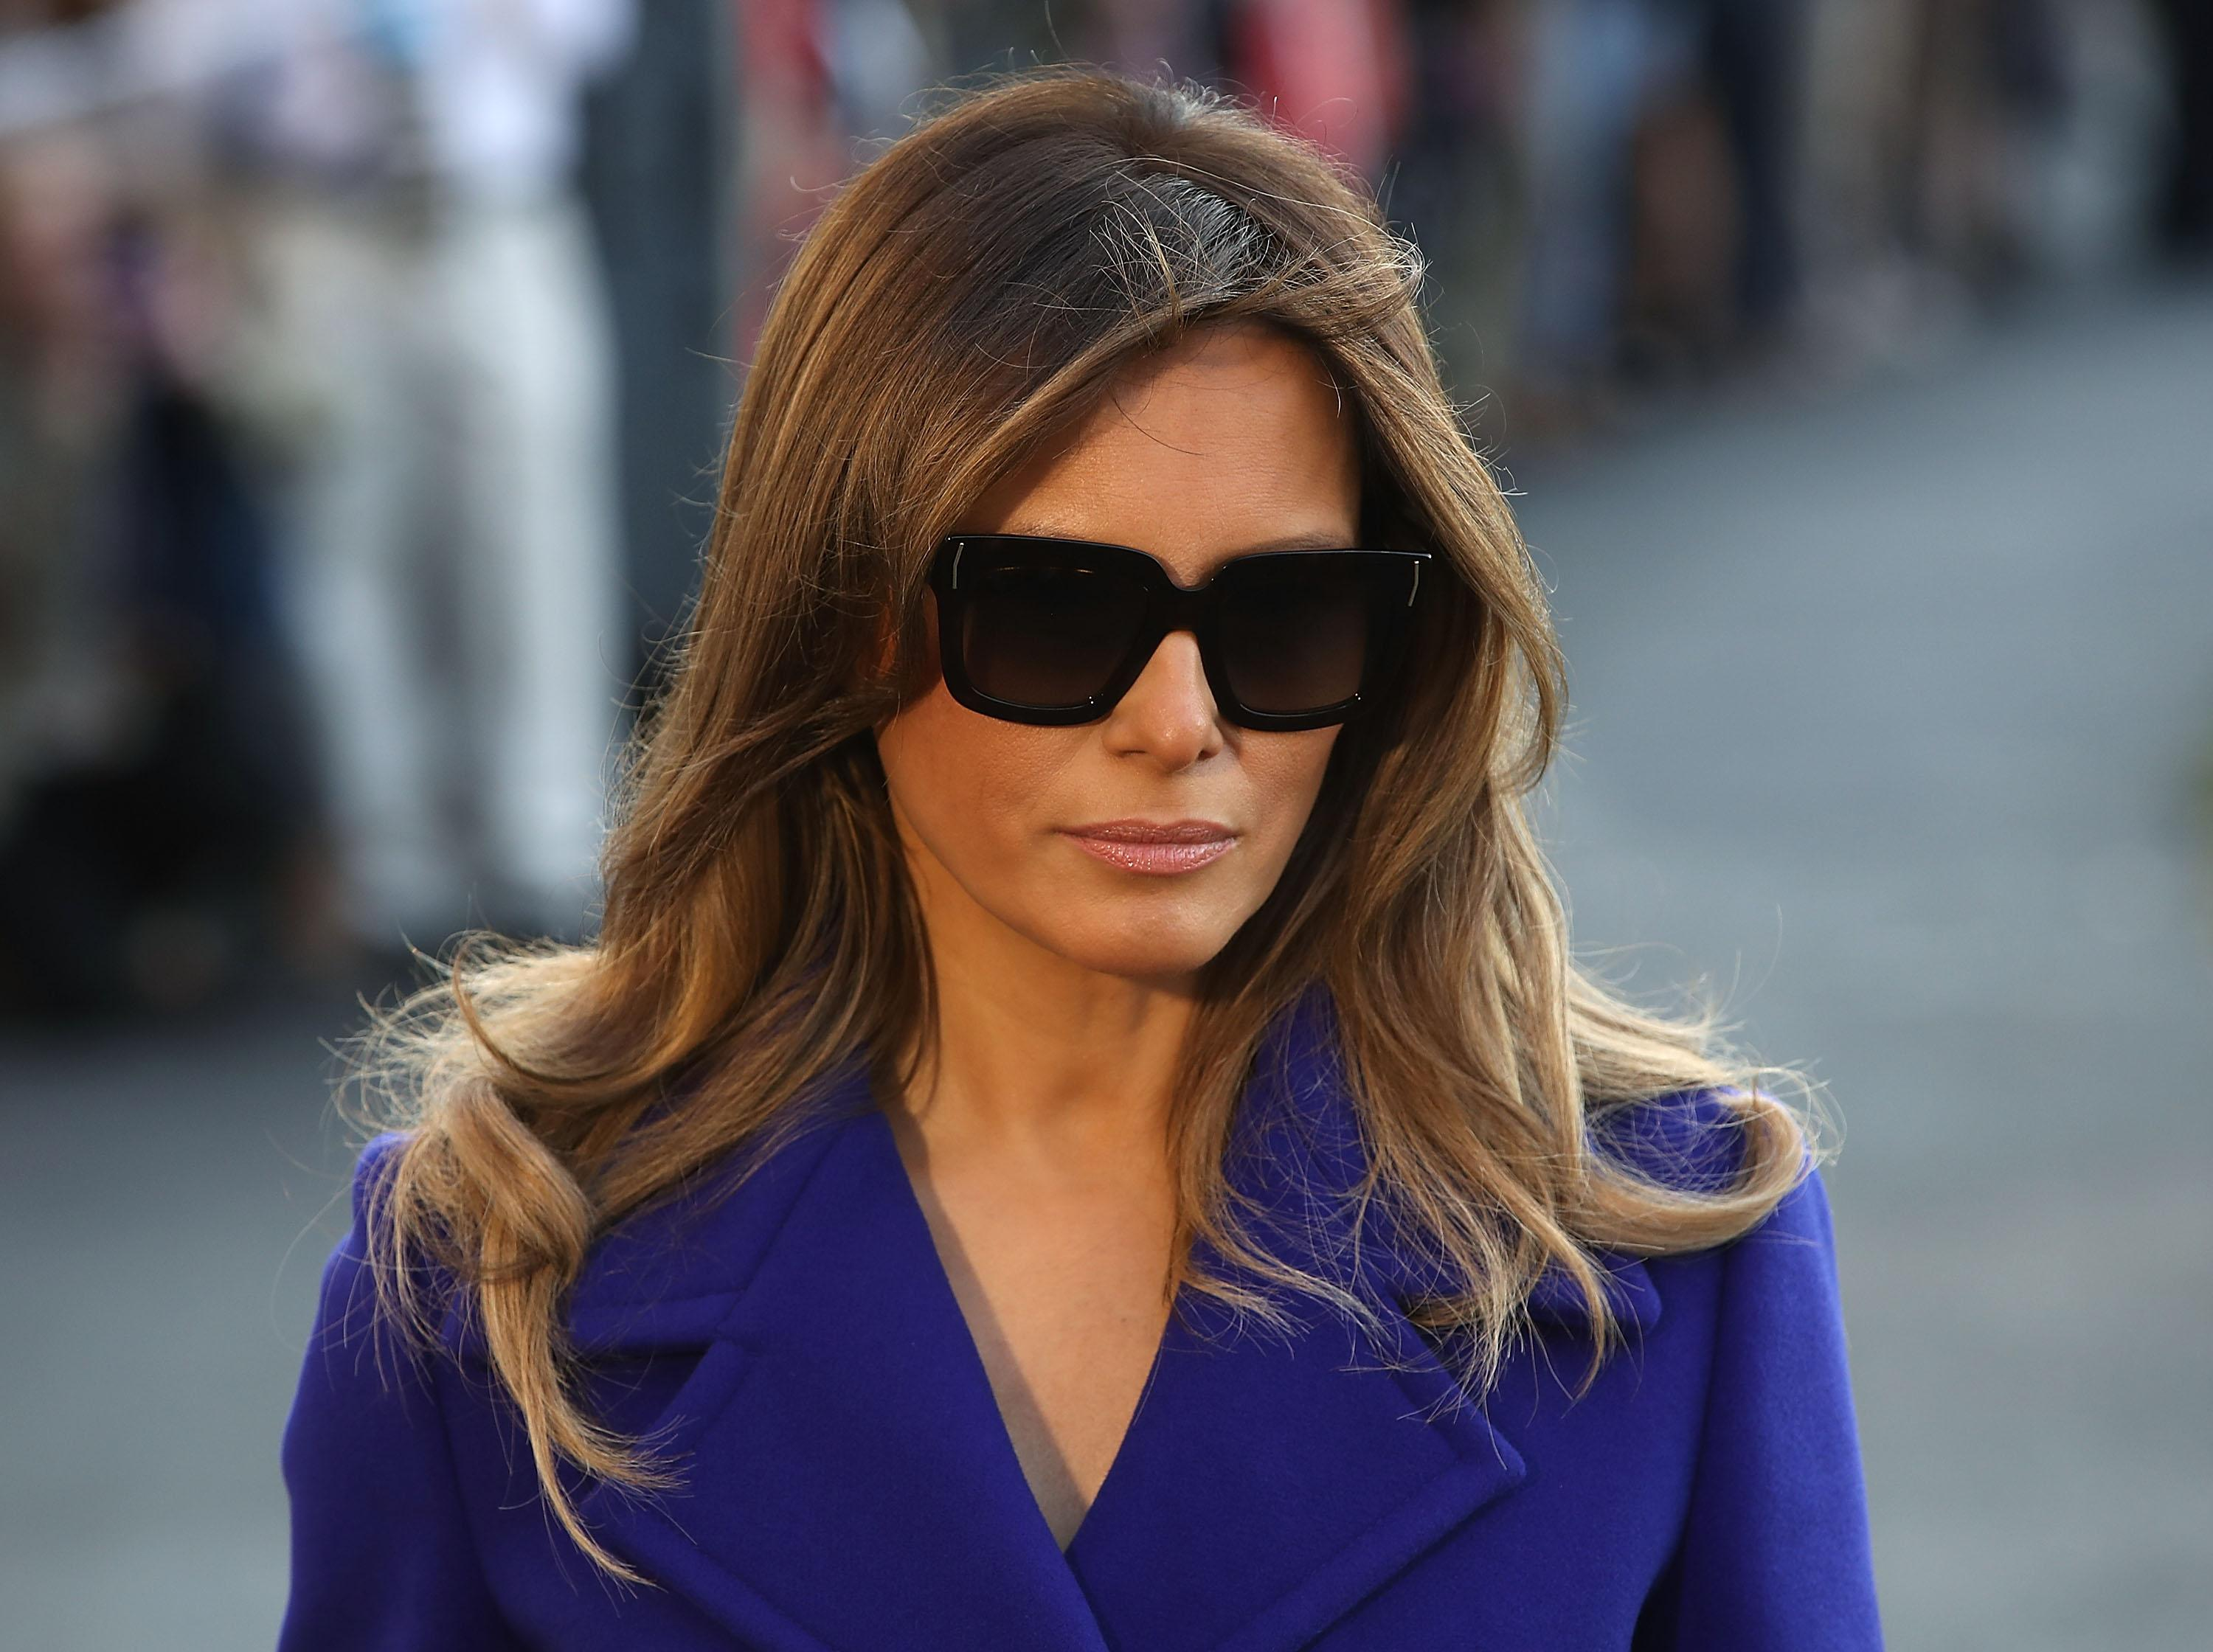 Melania Trump's favourite TV show is 'How To Get Away With Murder'